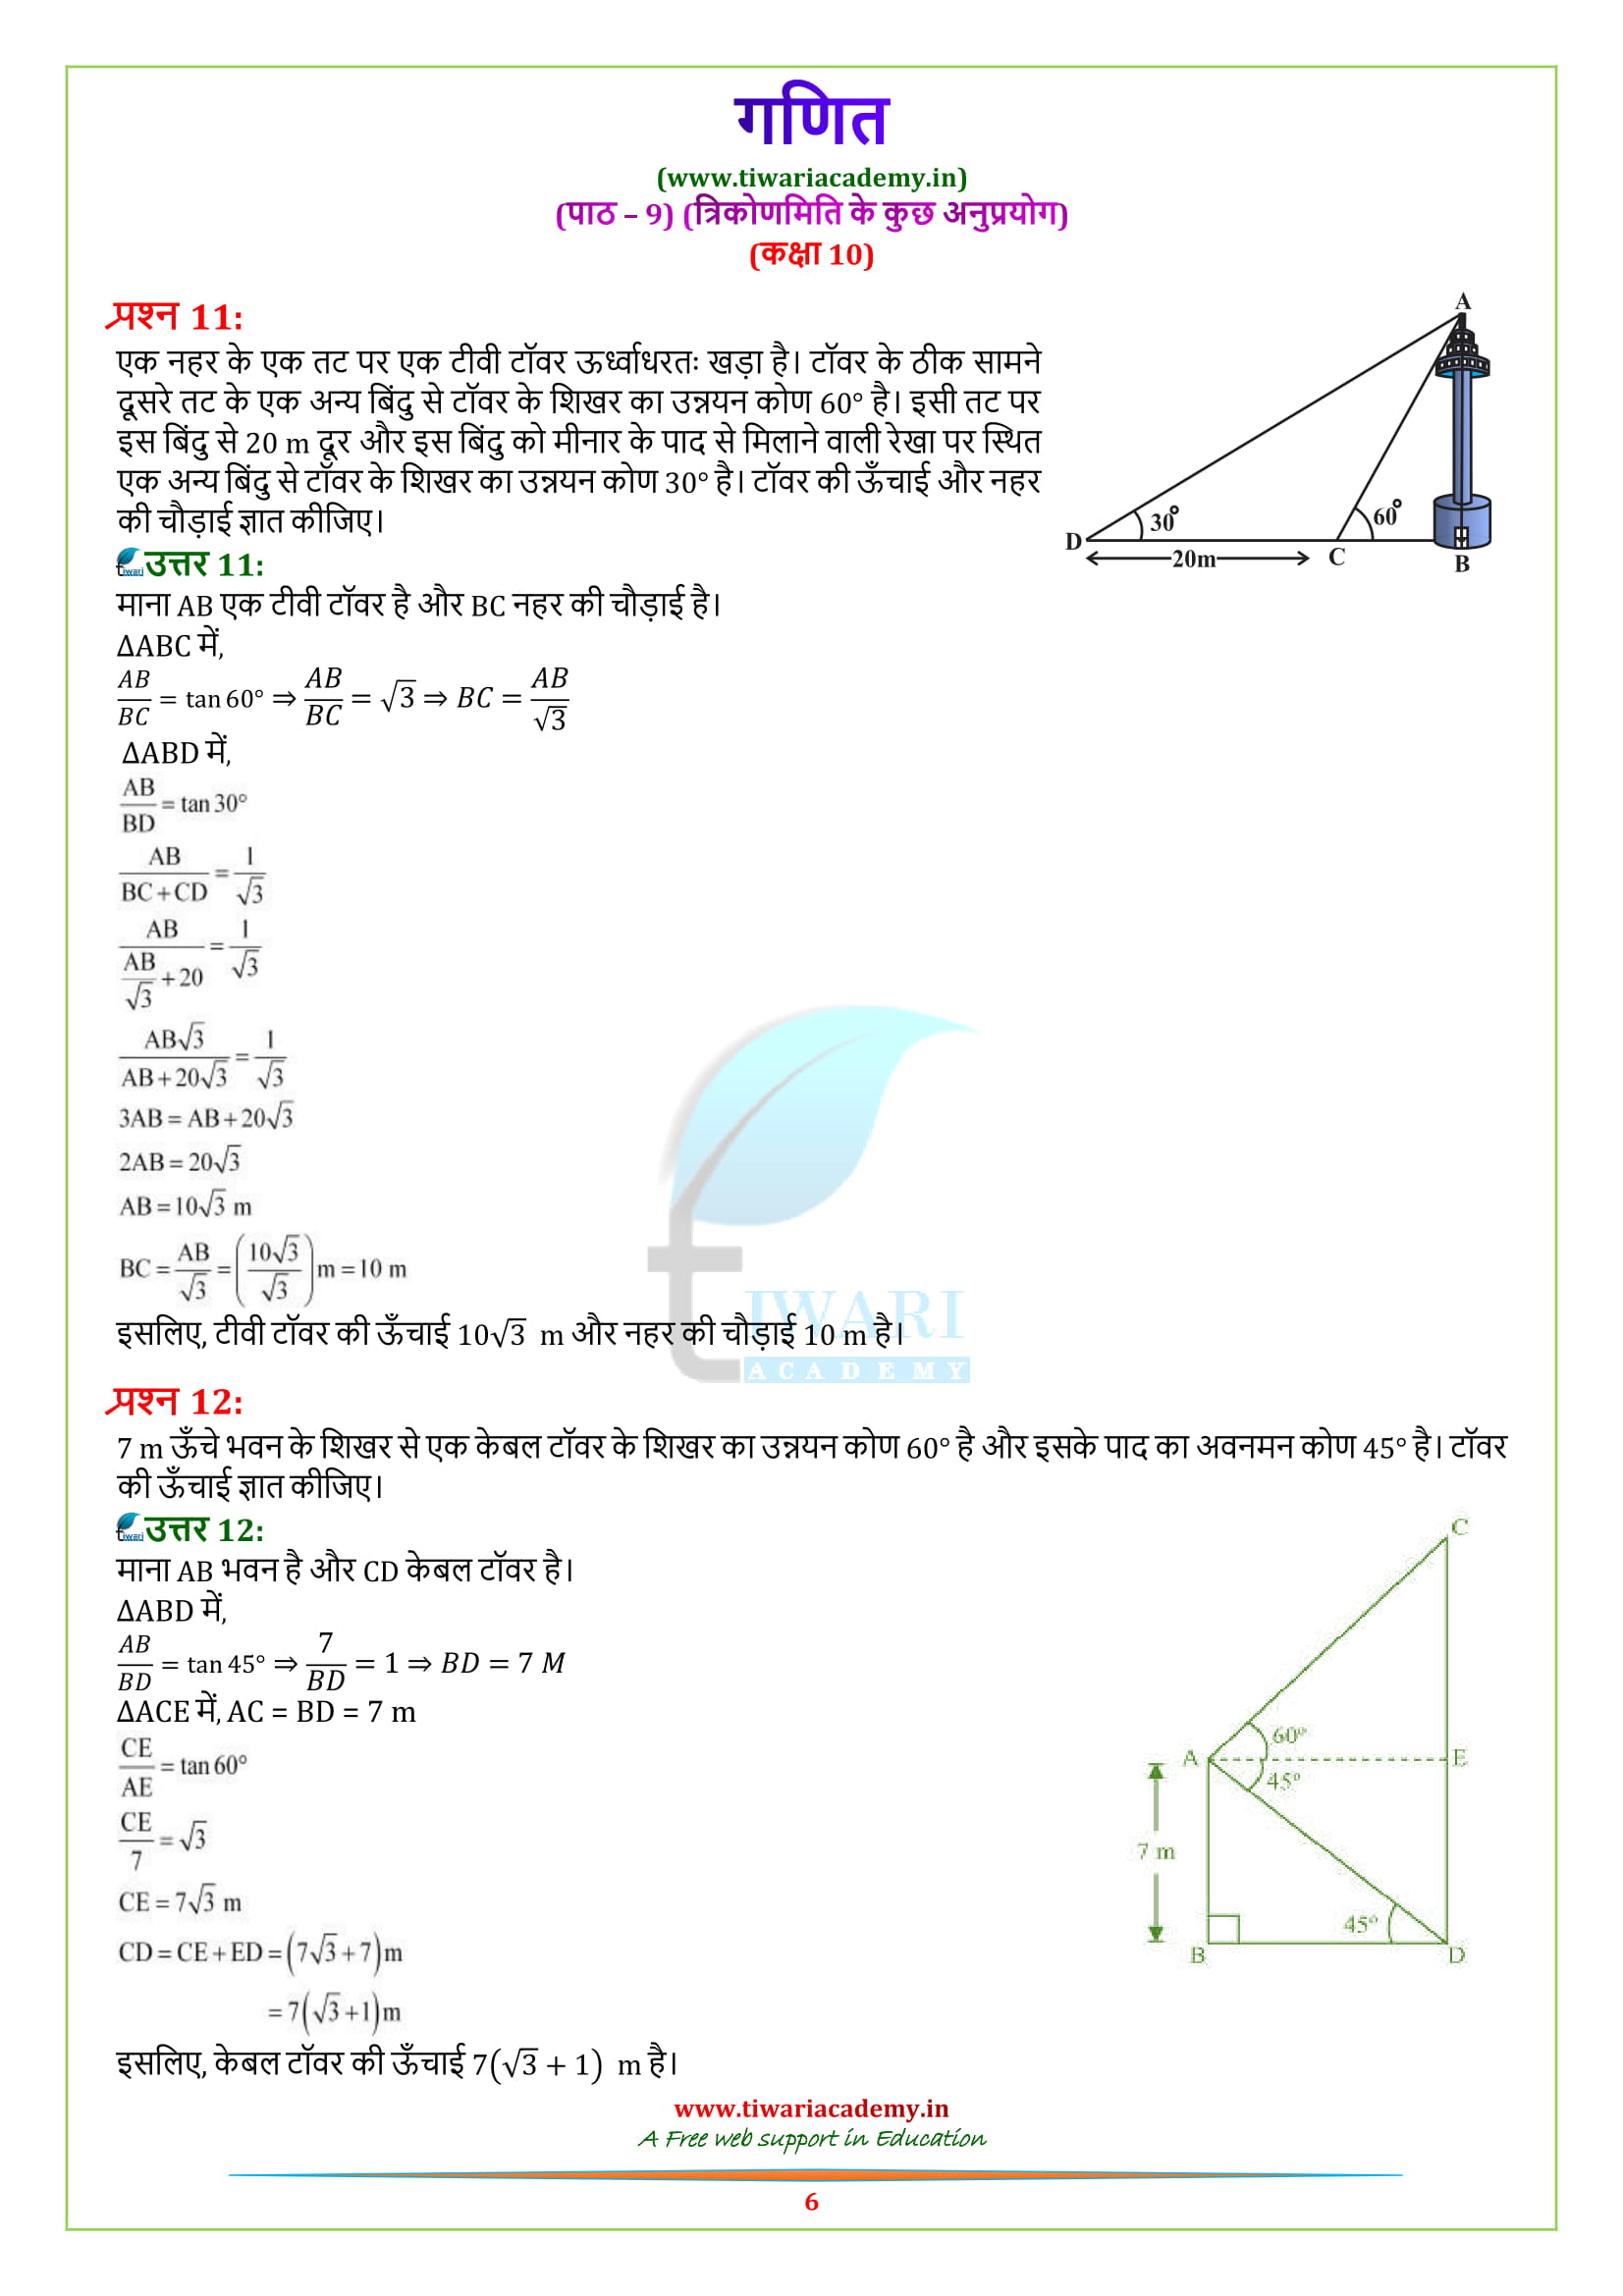 Class 10 Maths Exercise 9.1 question 11 and 12 solutions in hindi